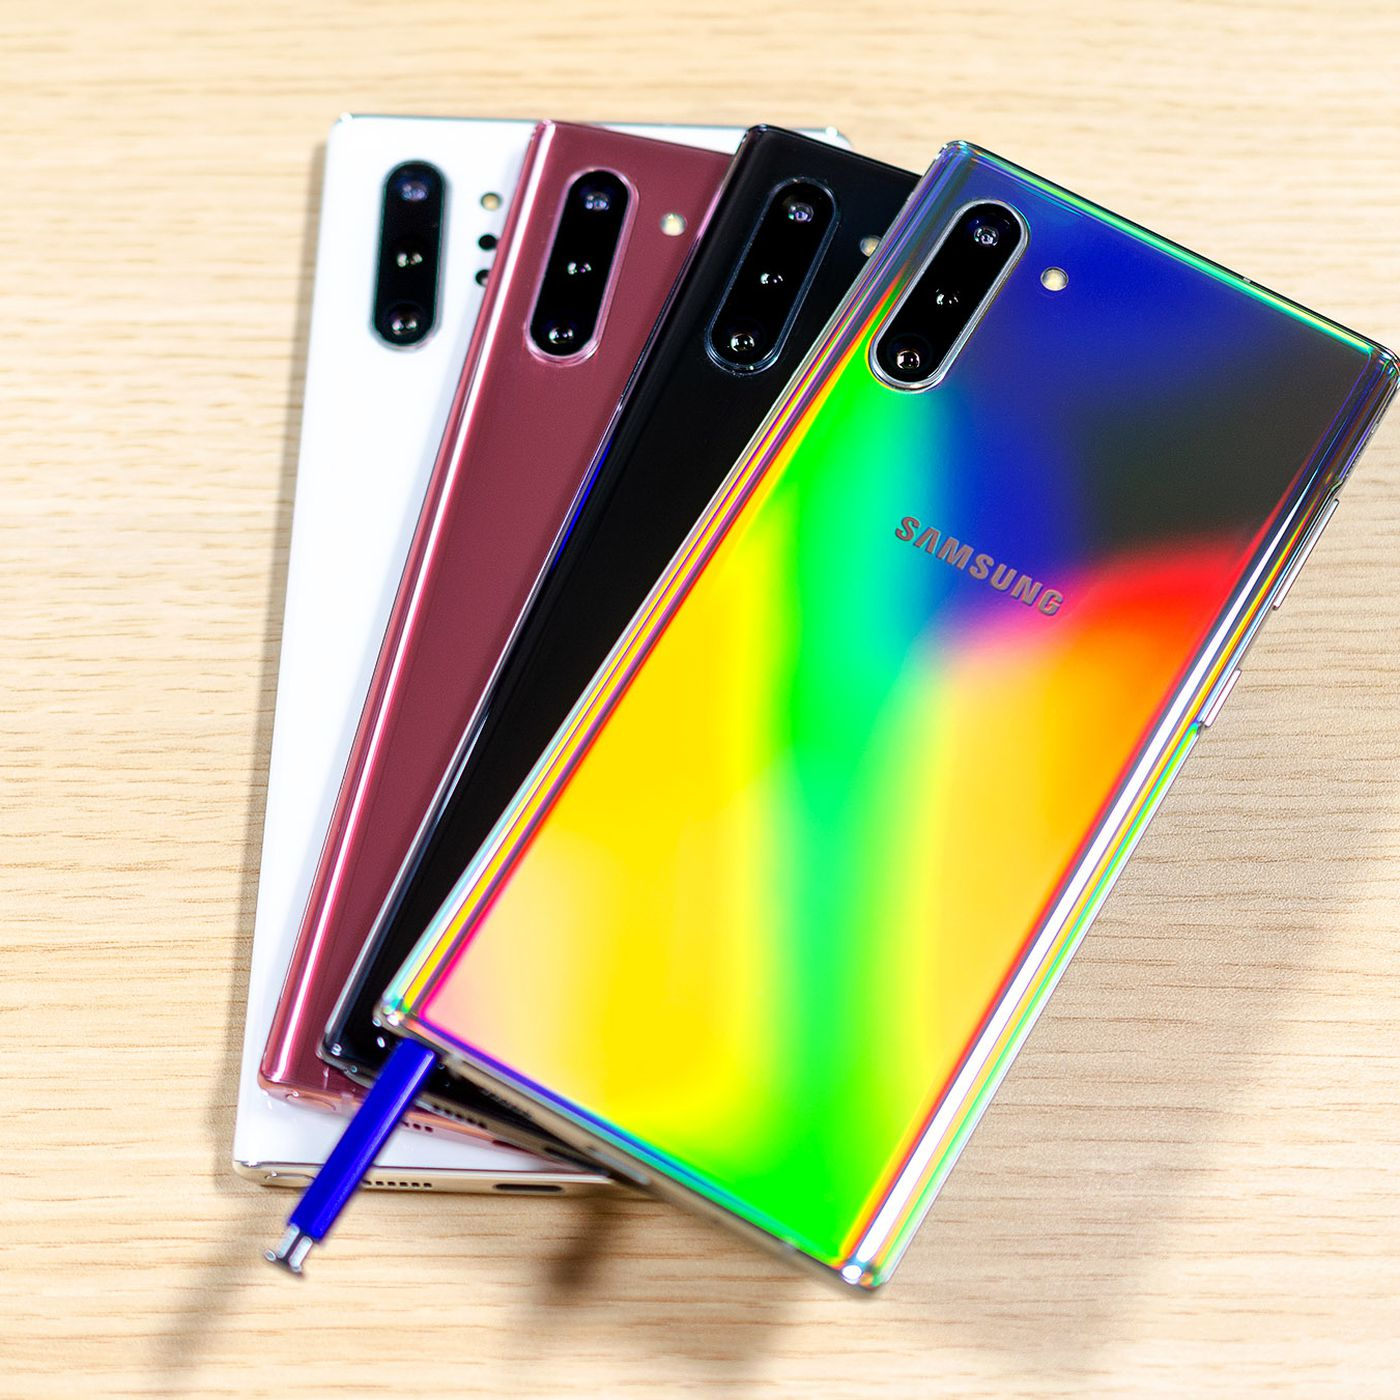 Image result for Samsung explains why the Note 10 doesn't have a headphone jack